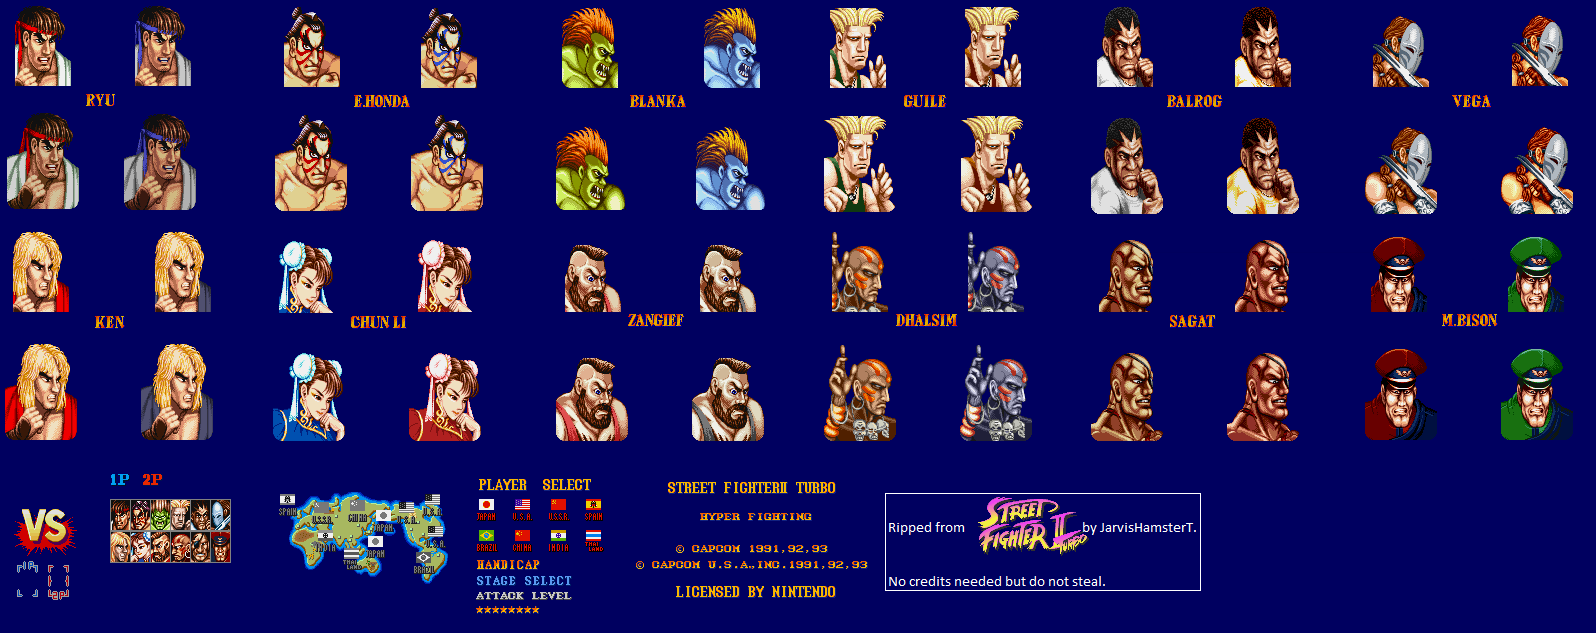 The Spriters Resource Full Sheet View Street Fighter 2